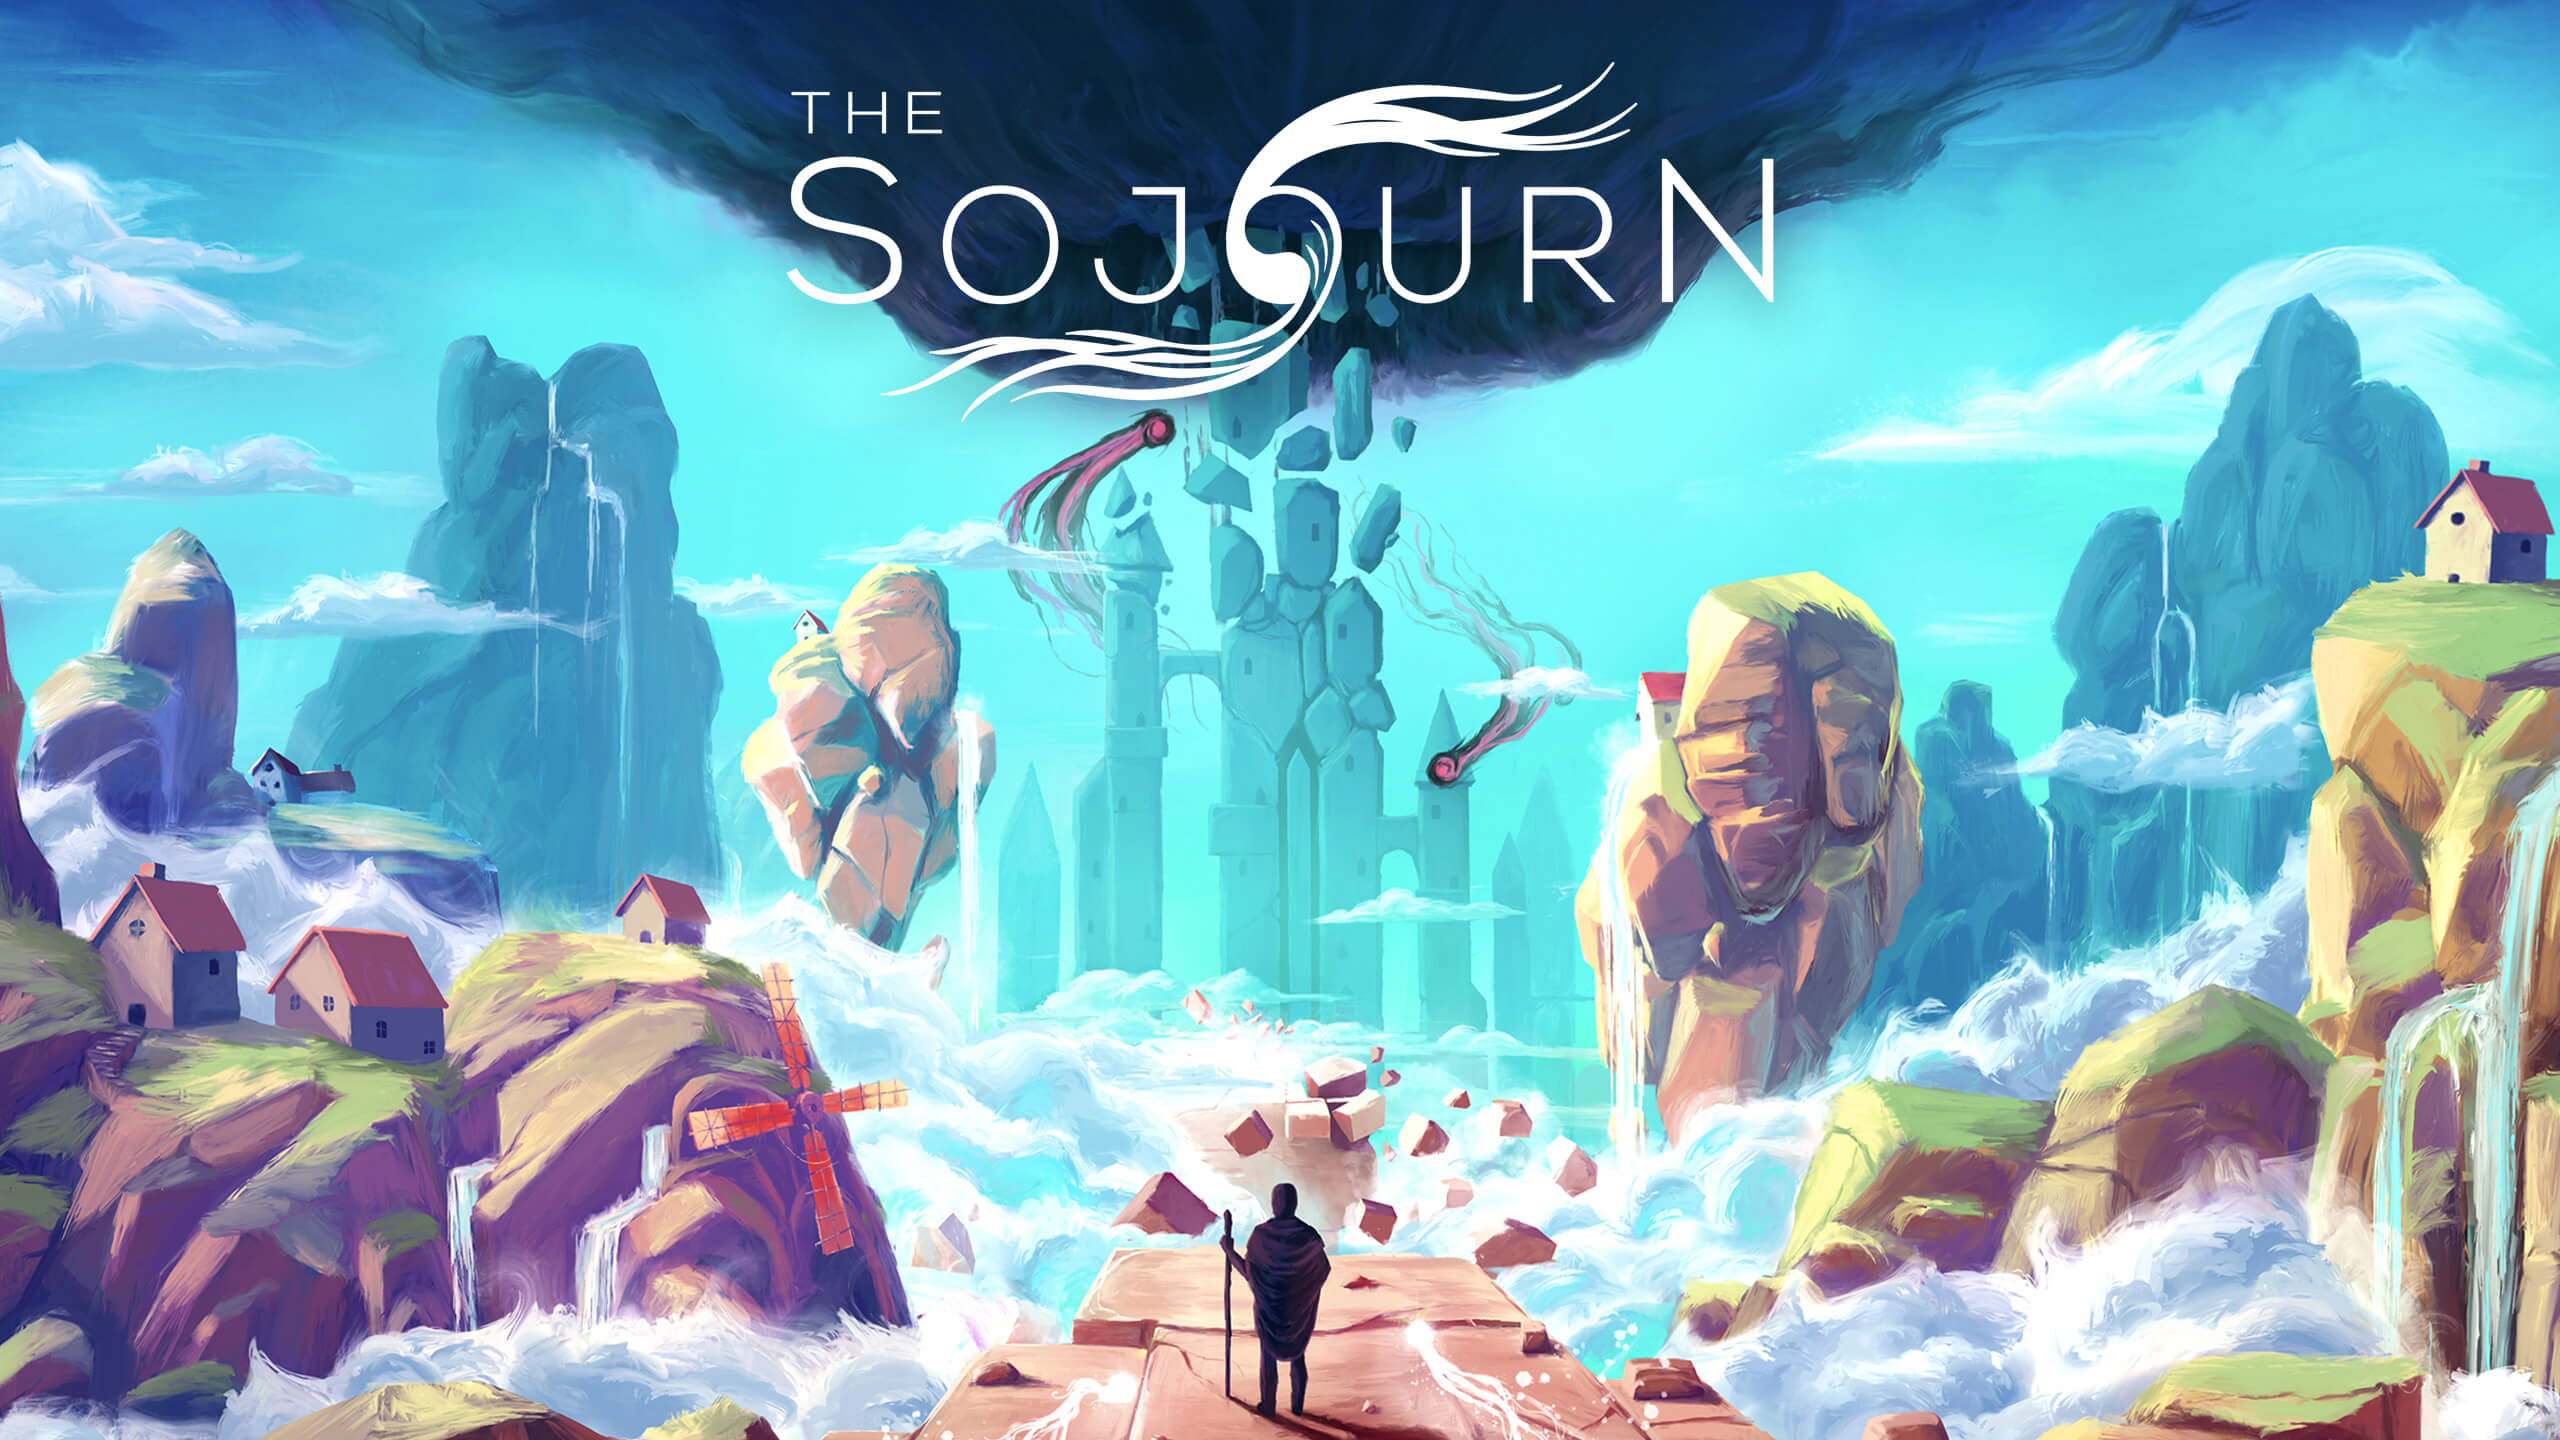 The Sojourn Has Released Today On Xbox One, Experience A Journey Through A Series Of Puzzles